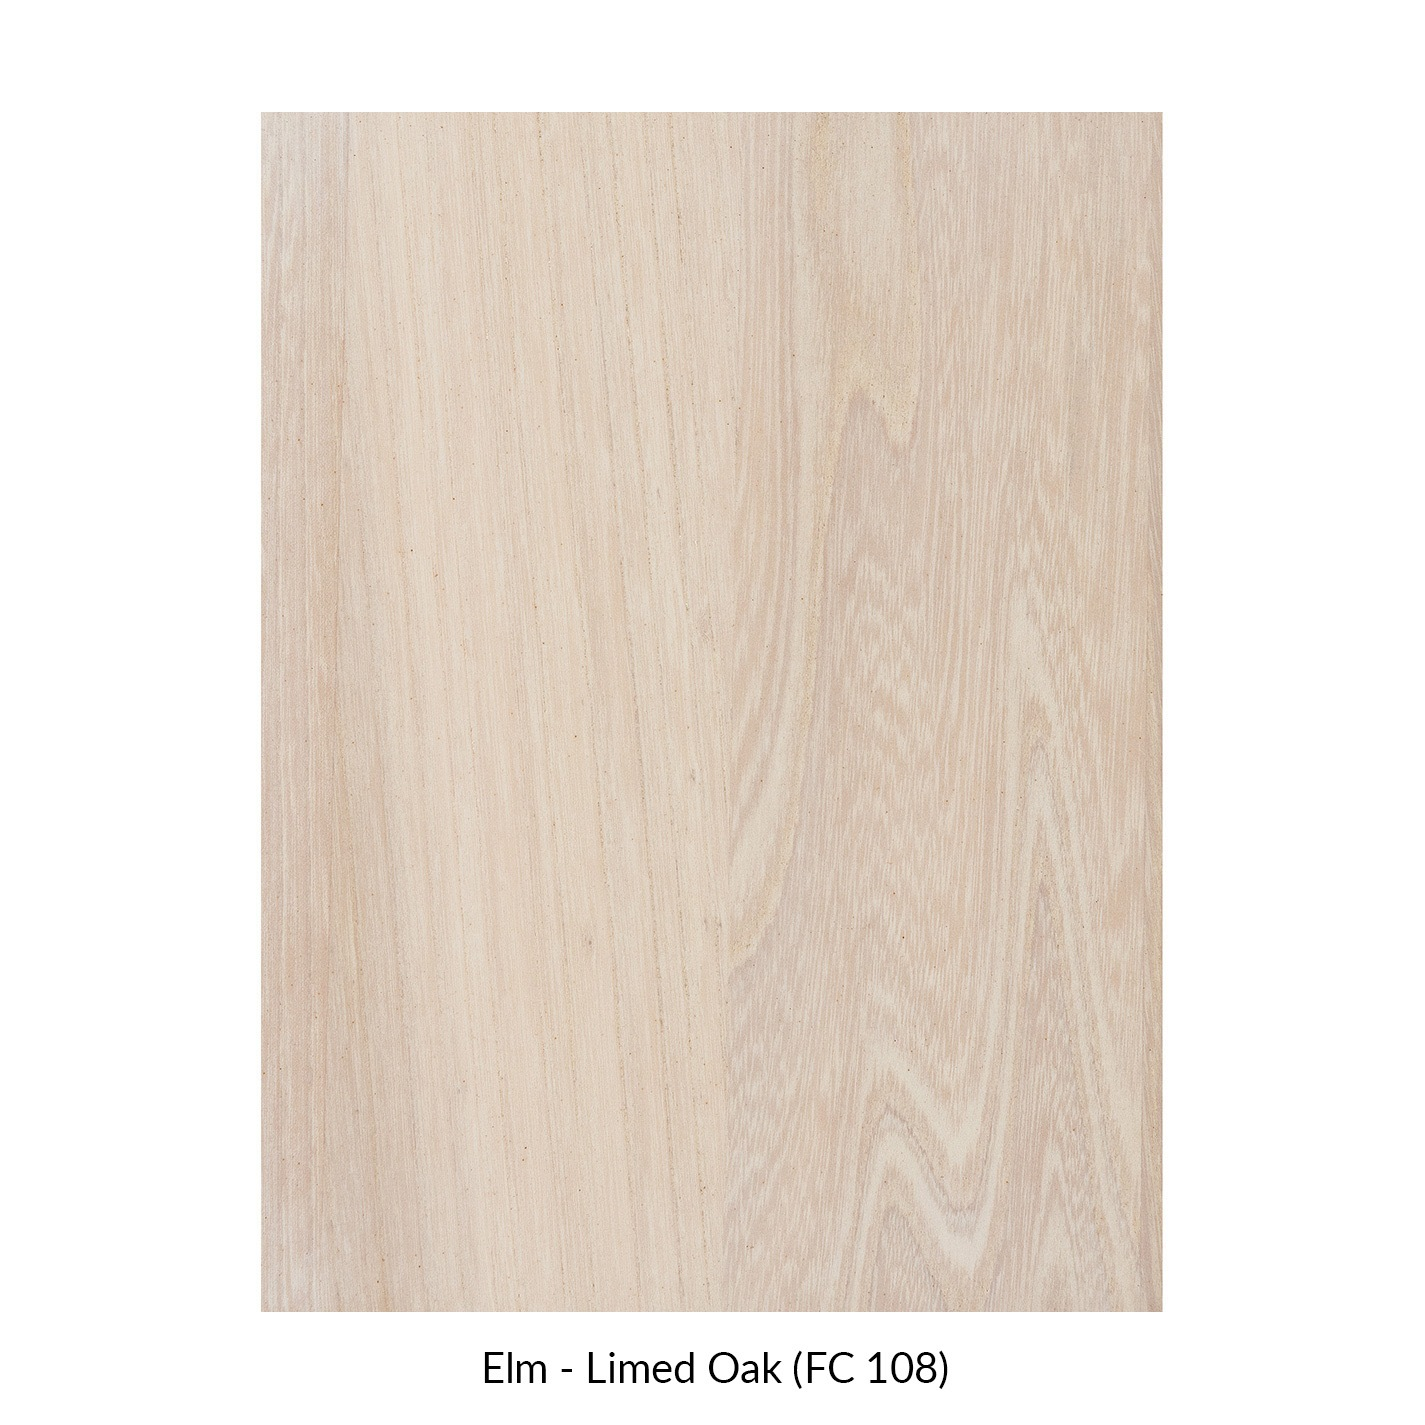 spectrum-elm-limed-oak-fc-108.jpg